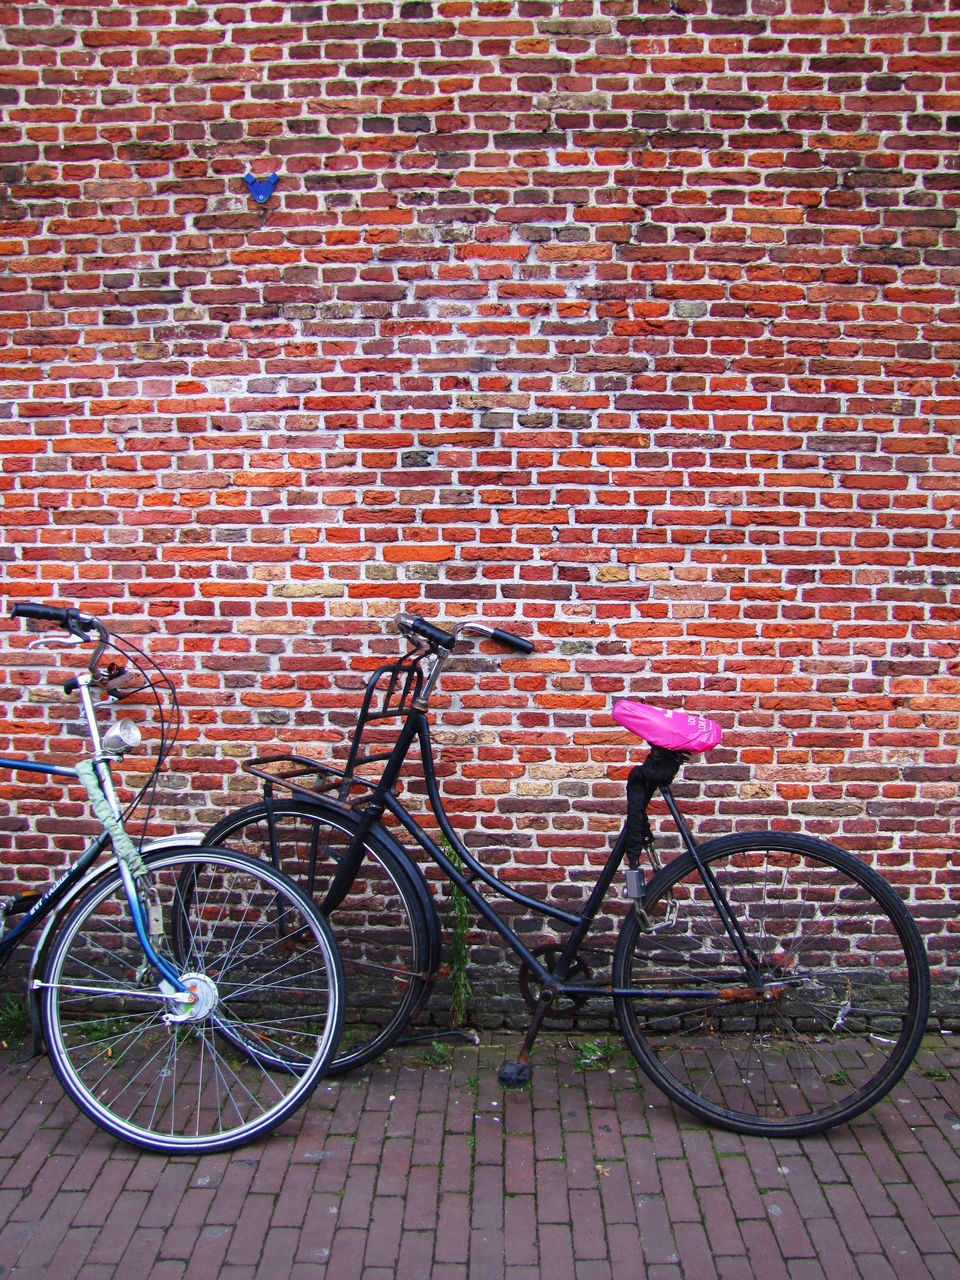 bicycle, transportation, brick wall, mode of transport, stationary, land vehicle, wall - building feature, day, outdoors, no people, leaning, bicycle rack, built structure, building exterior, architecture, city